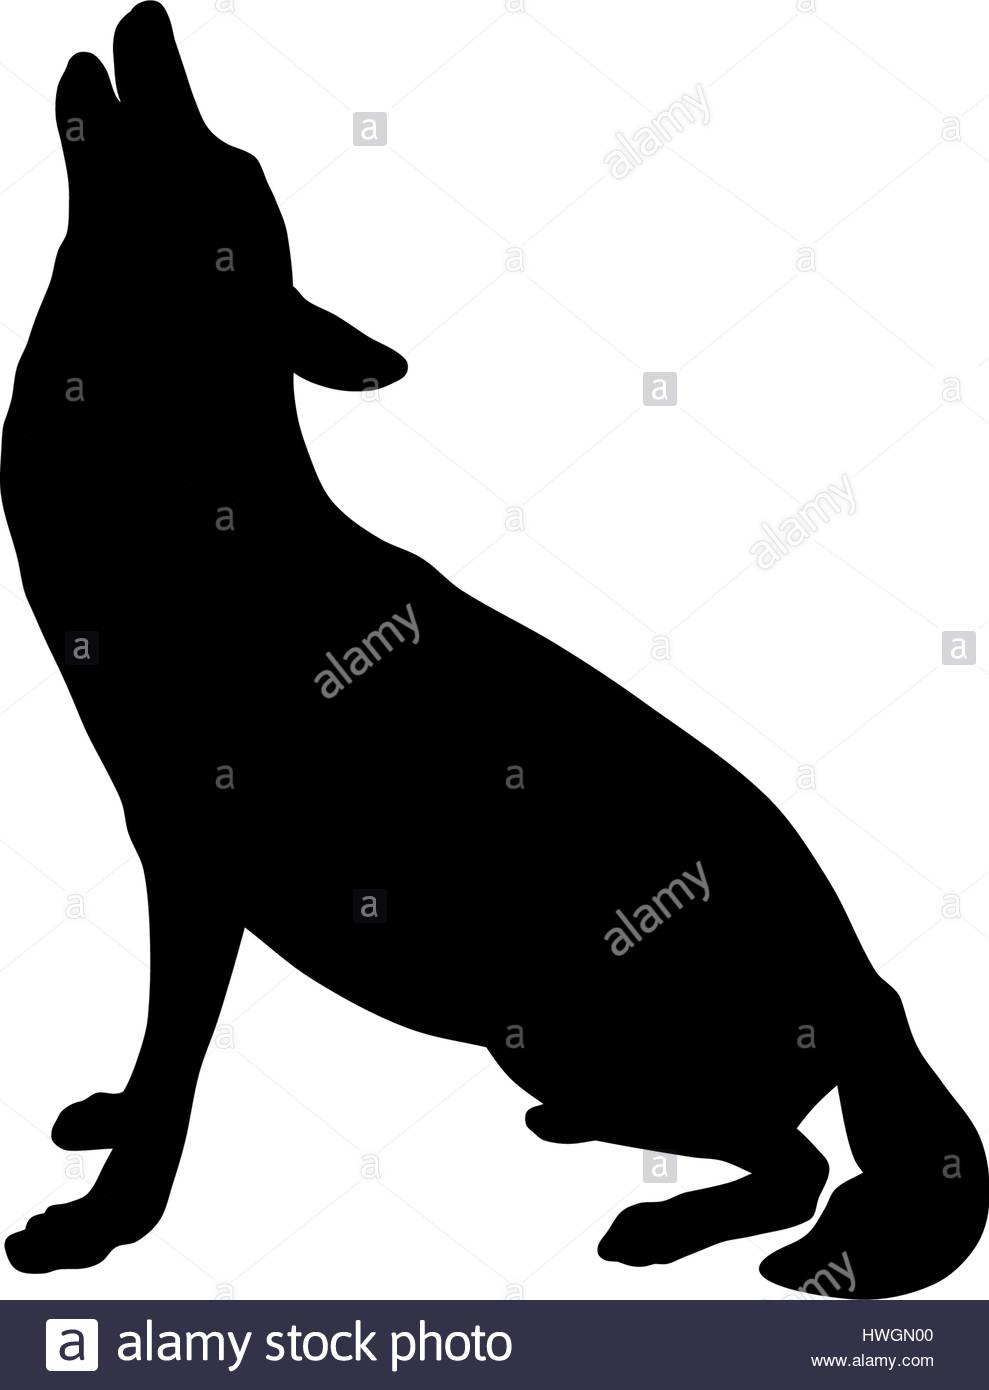 989x1390 Group Of Wolf Silhouette Stock Photos